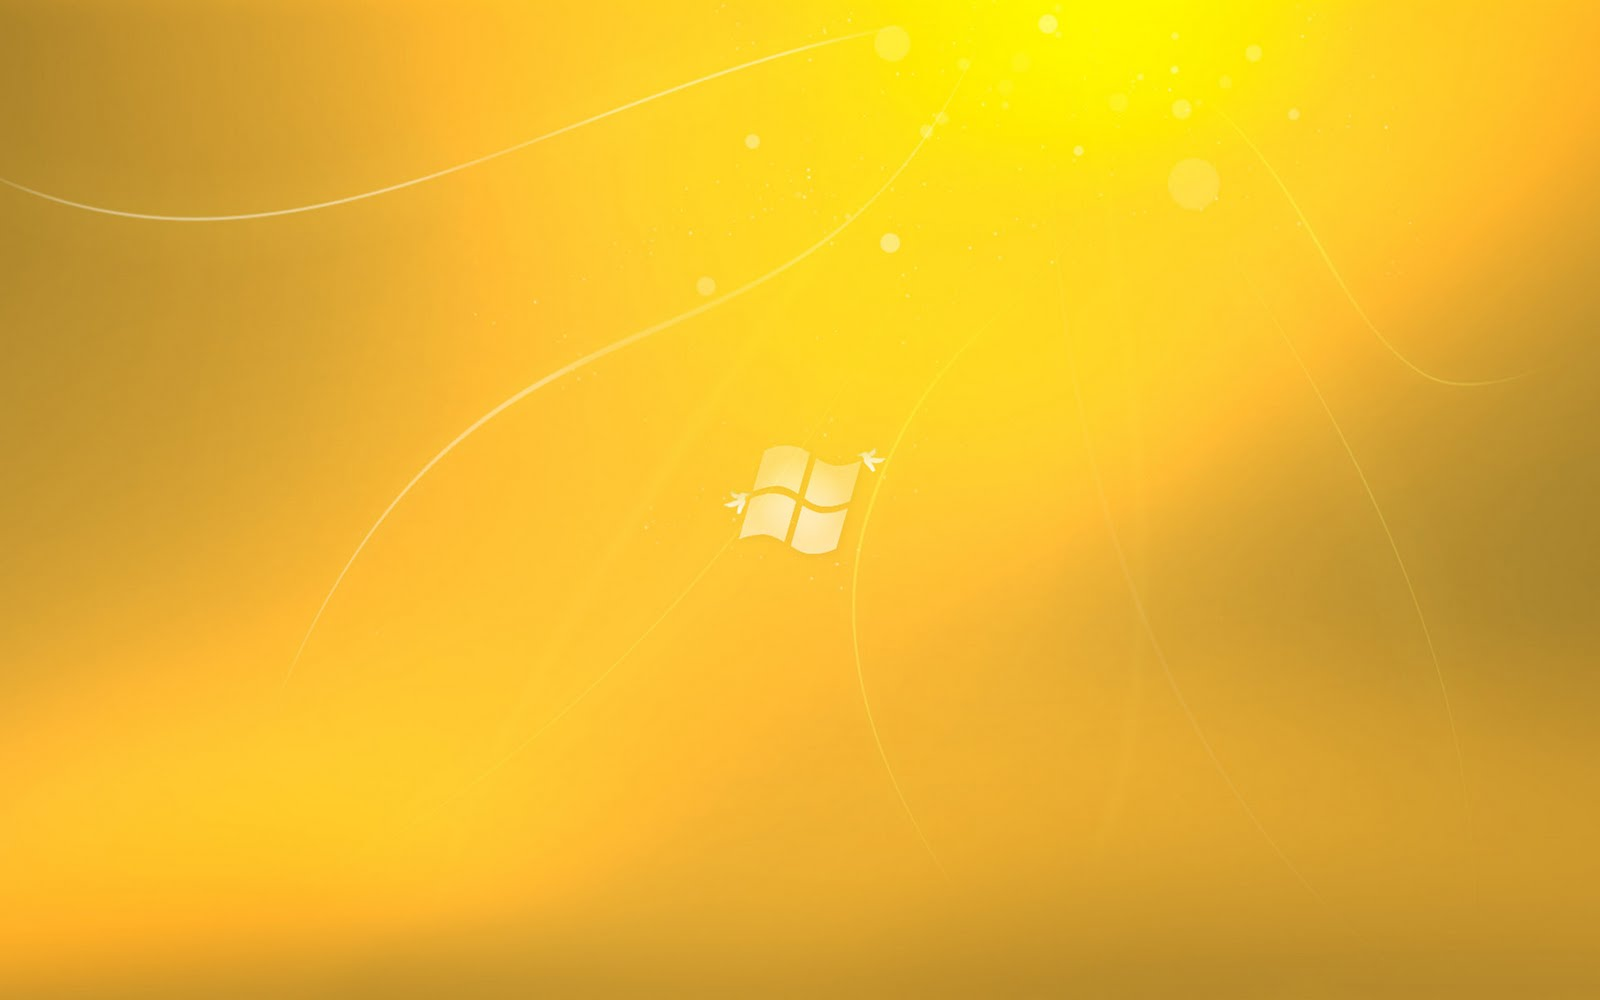 Creative Windows 10 Wallpaper: Free Wallpapers: Windows 7 Wallpapers